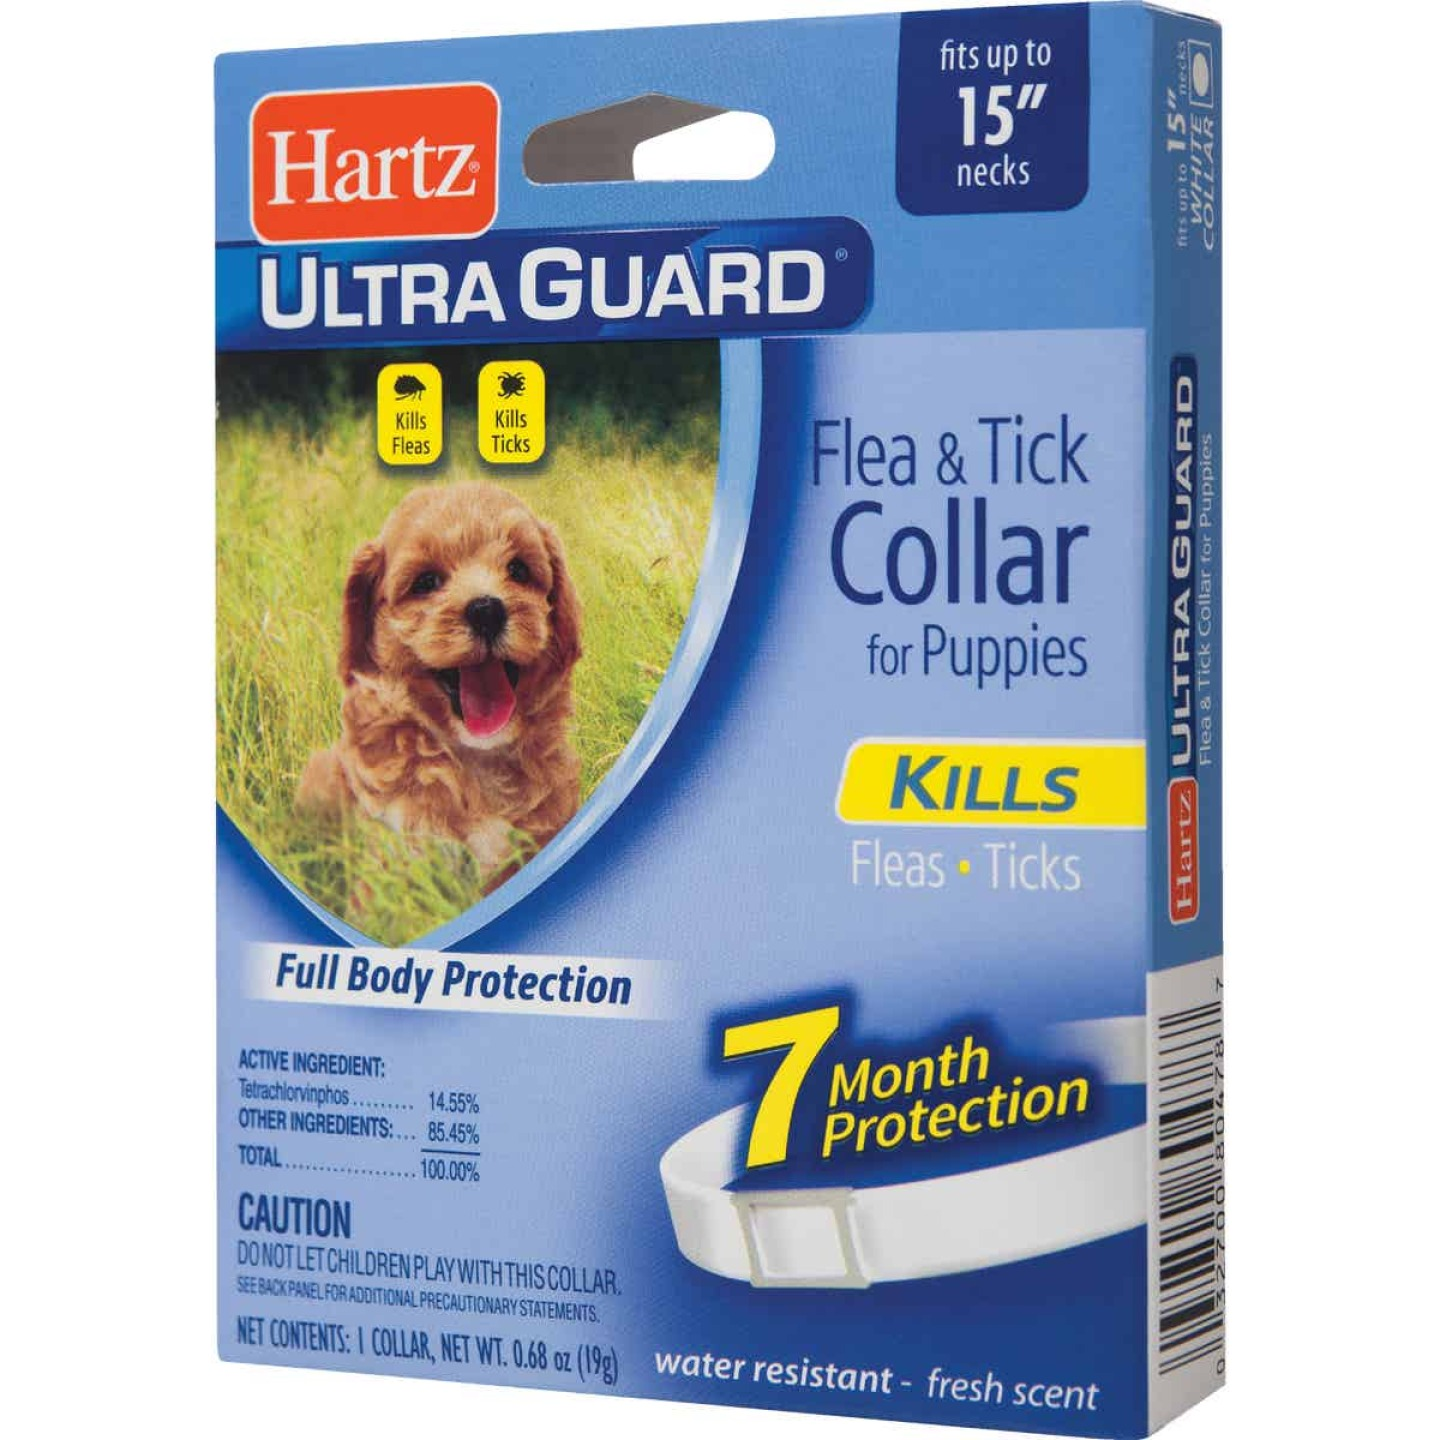 Hartz UltraGuard Water Resistant Flea & Tick Collar For Puppies Image 1